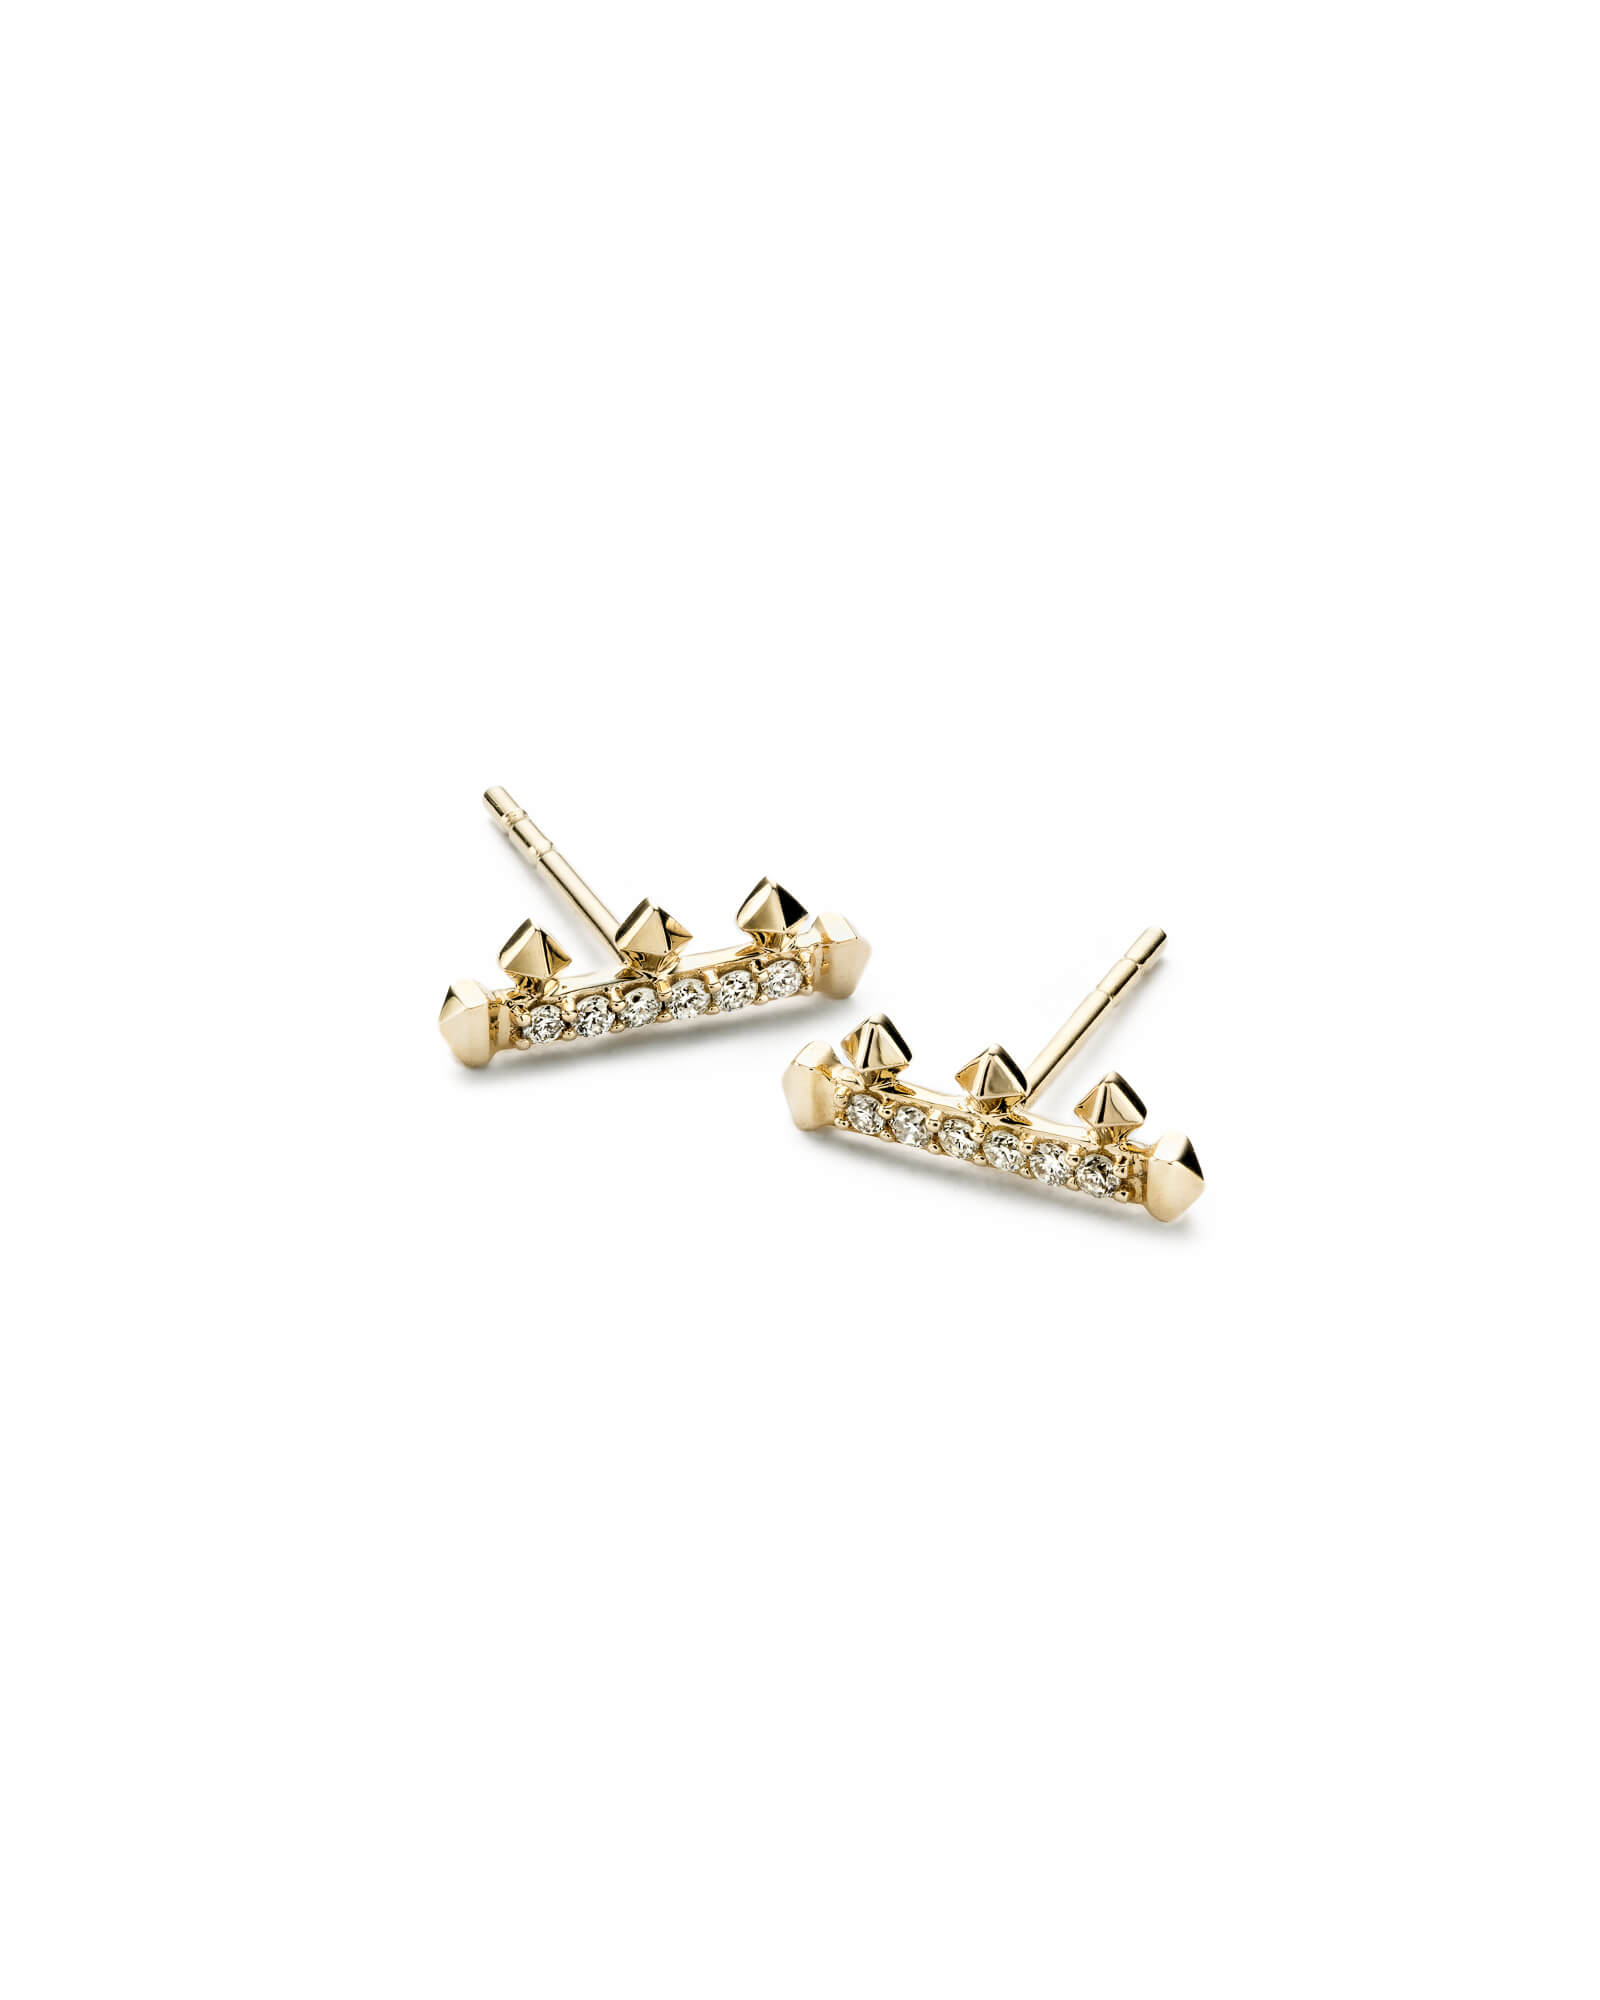 Dorothy Stud Earrings in White Diamond and 14k Yellow Gold